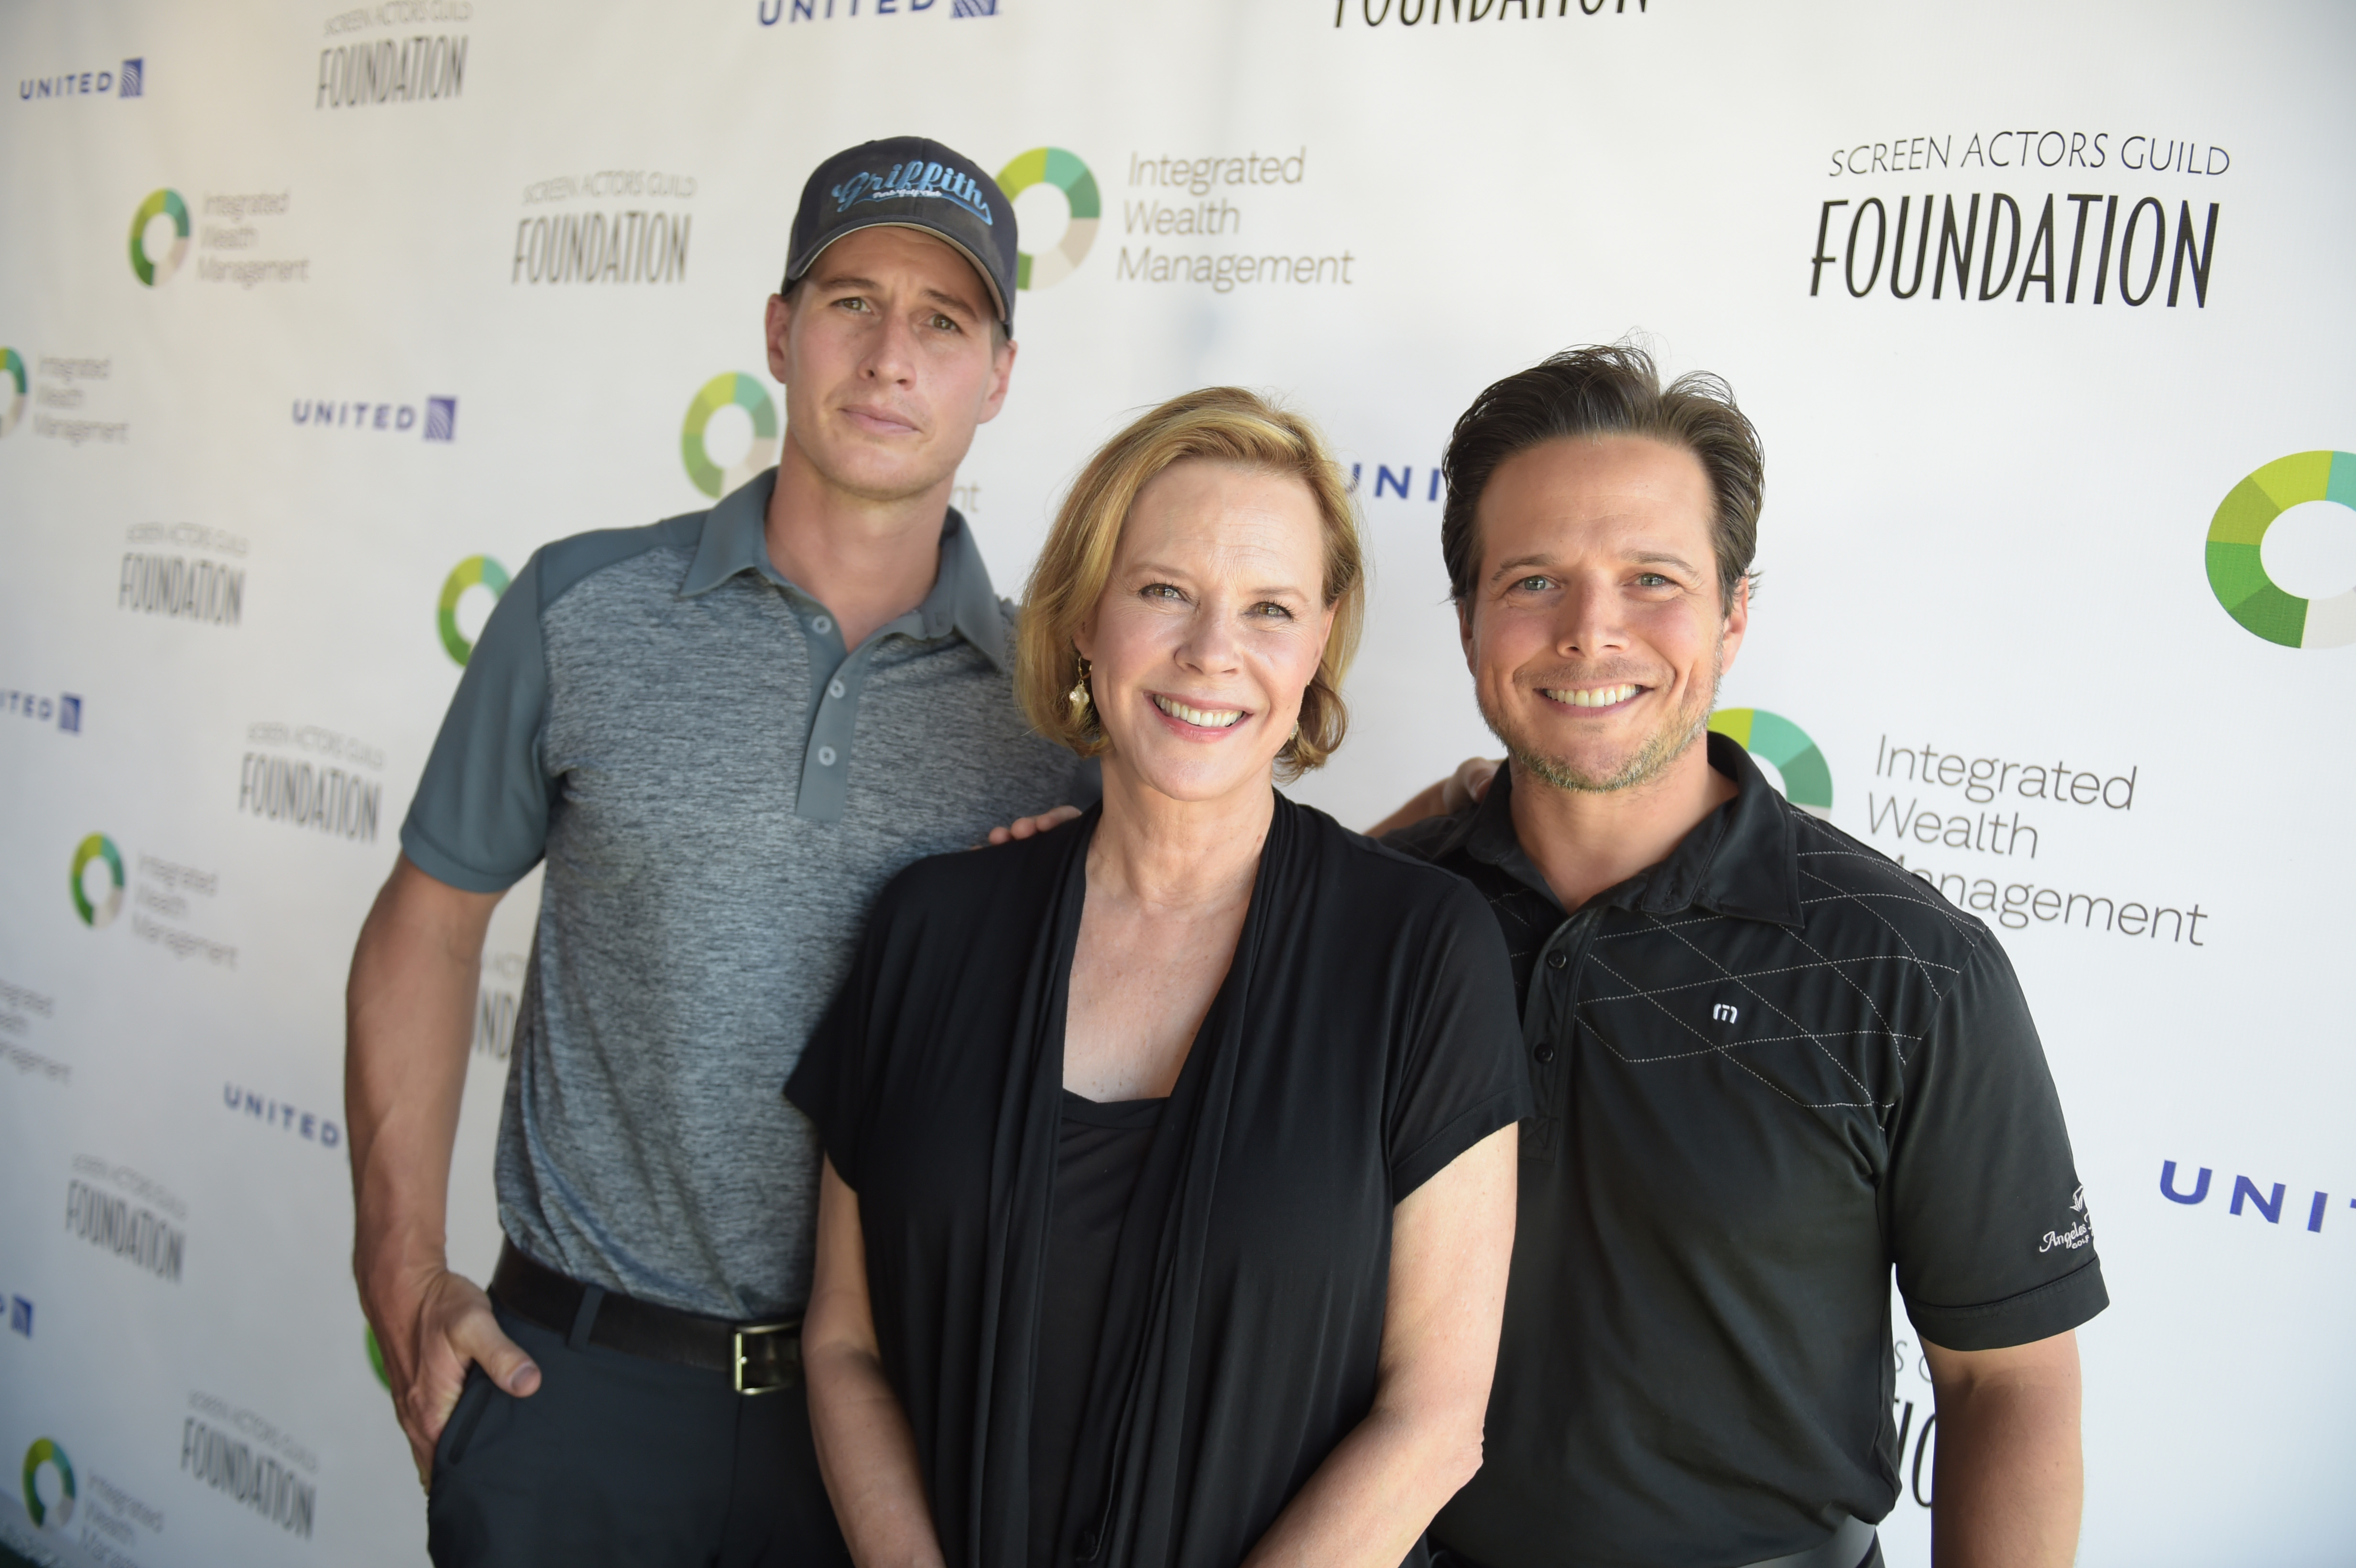 Hosts Brendan Fehr and Scott Wolf with SAG Foundation President JoBeth Williams at The Screen Actors Guild Foundation's 6th Annual Los Angeles Golf Classic on June 8, 2015 in Burbank, California. (Photo by Jason Kempin/Getty Images for The Screen Actors Guild Foundation)